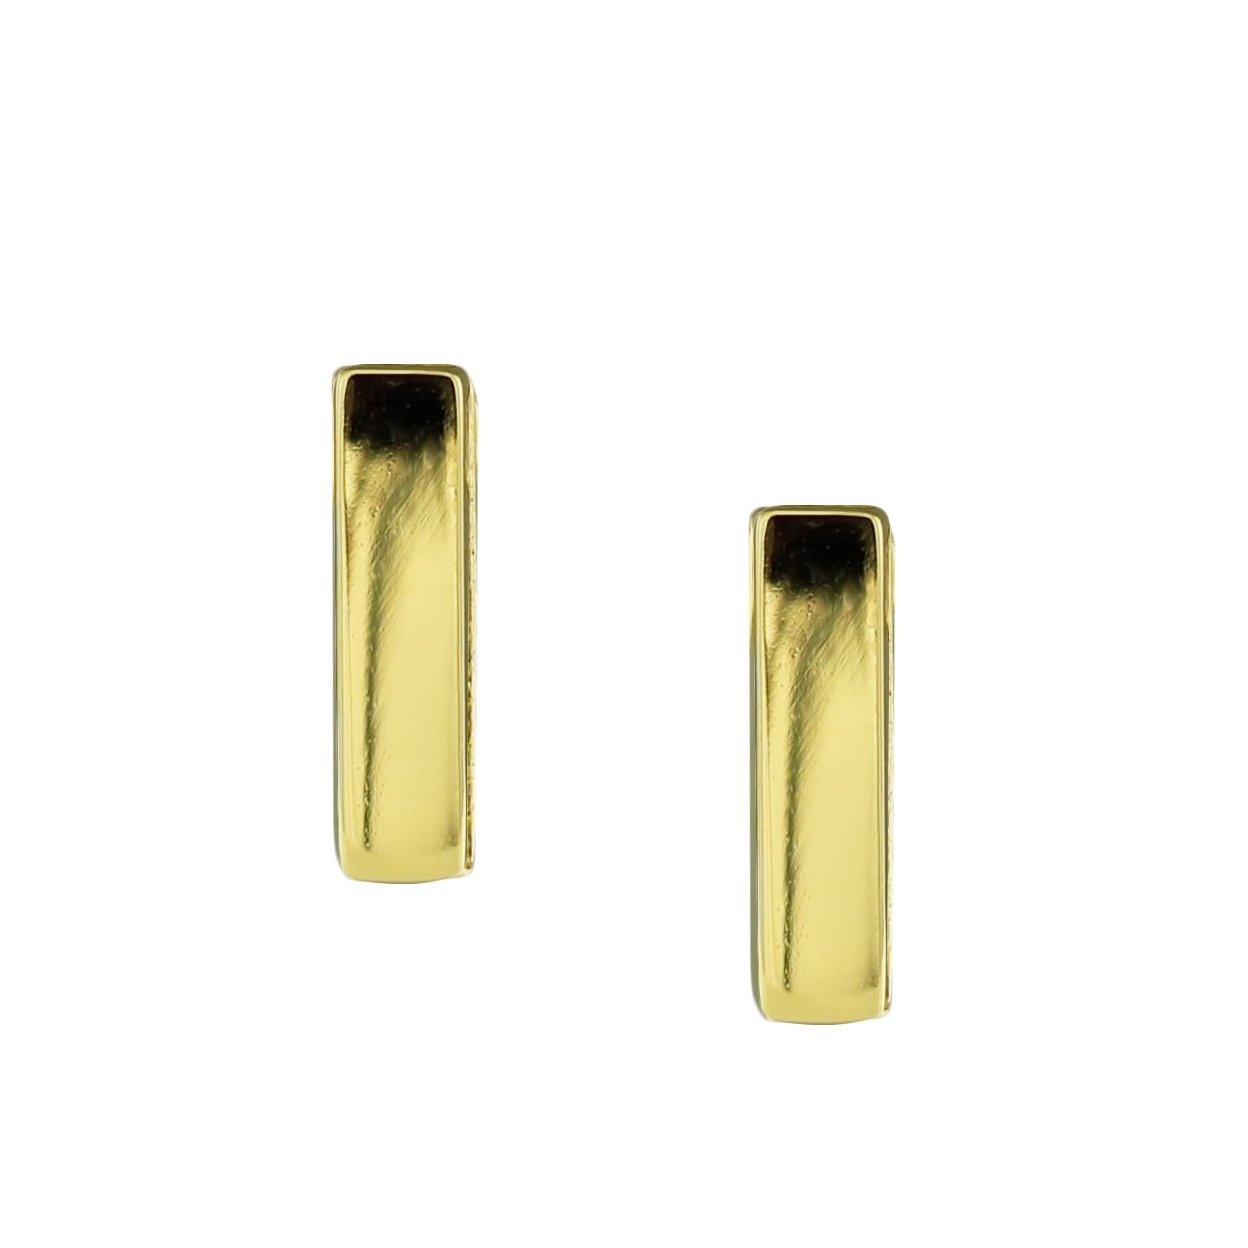 MINI POISE BAR EARRINGS - GOLD - SO PRETTY CARA COTTER